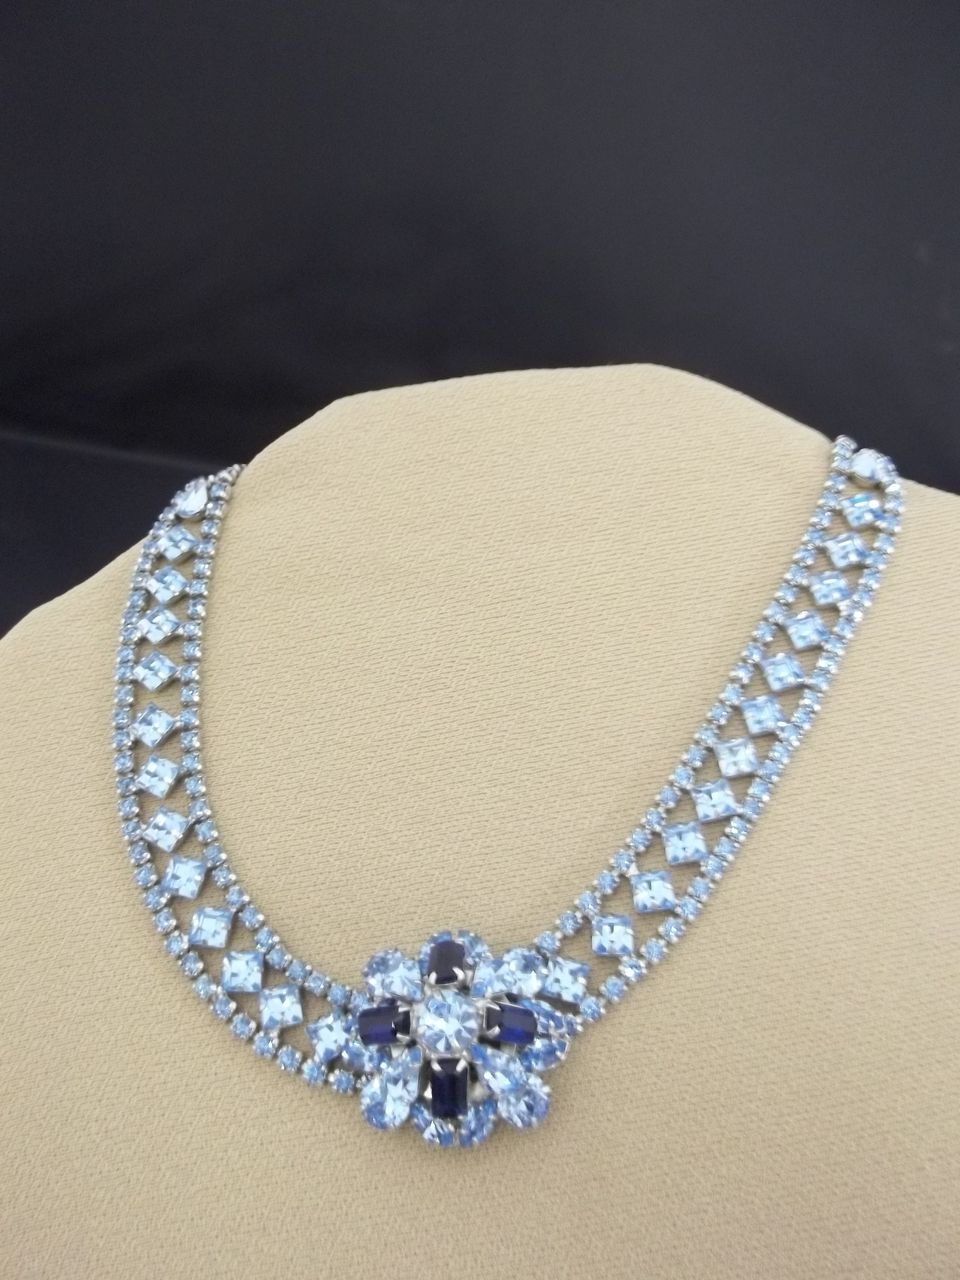 Vintage Sparkling Blue Rhinestone Necklace